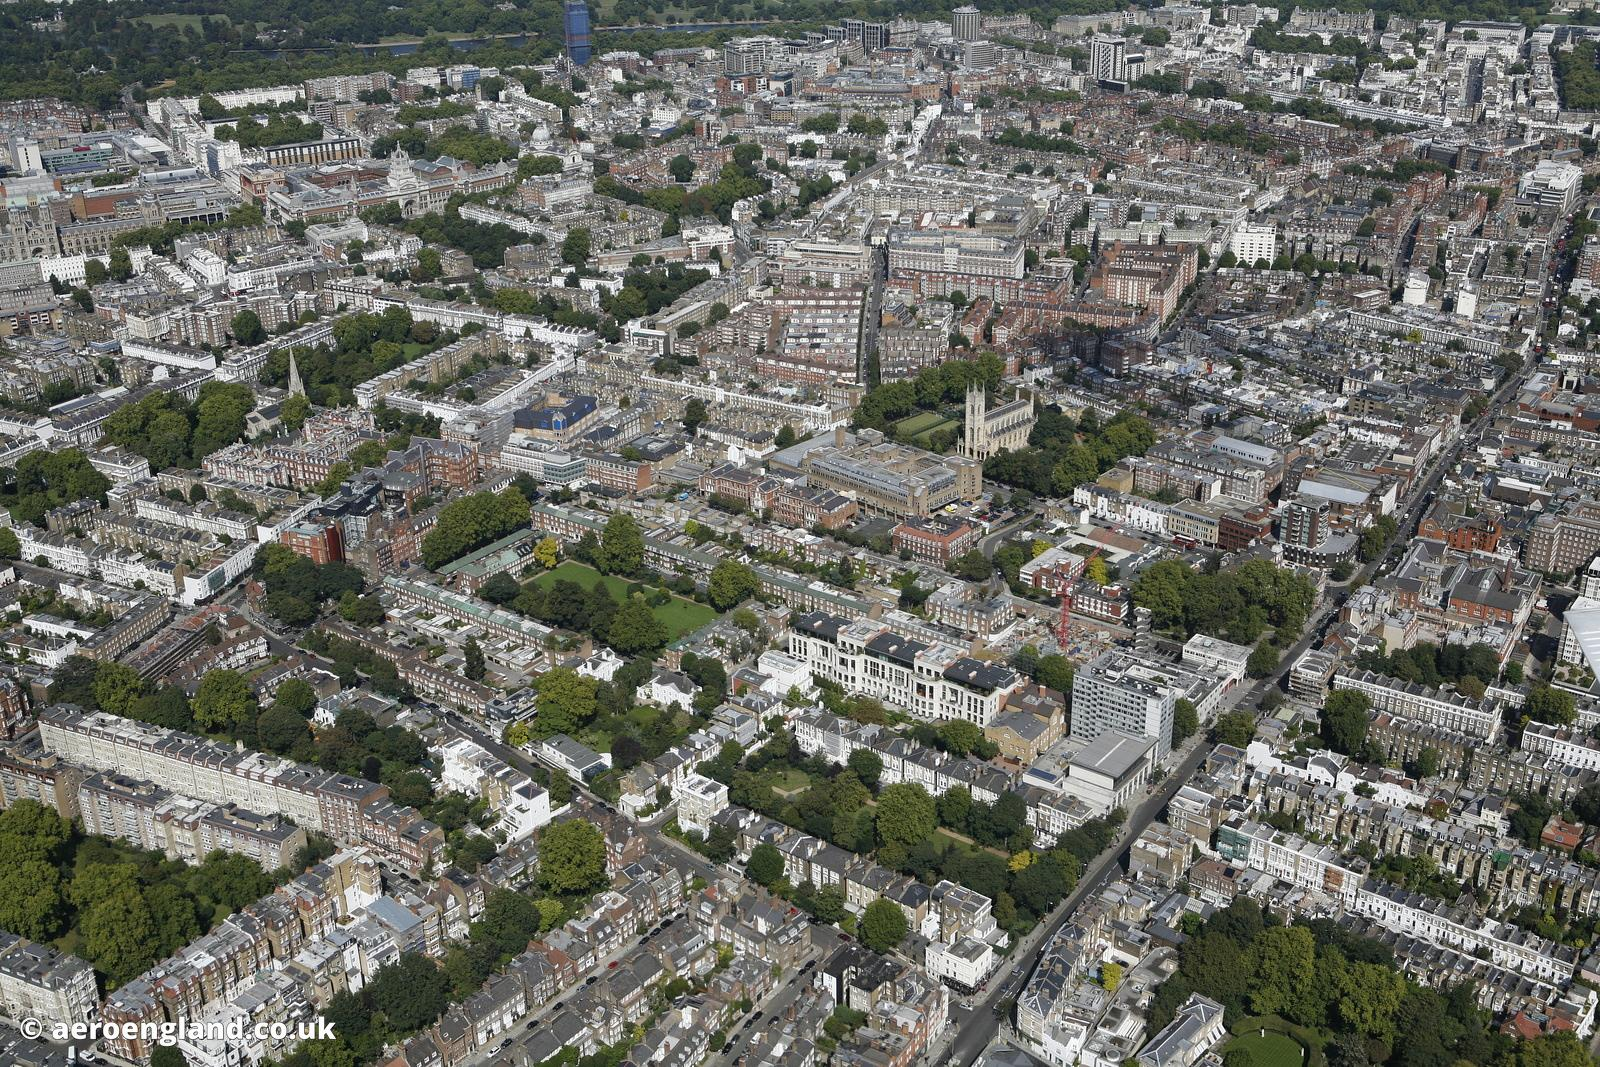 aerial photograph of Chelsea London England UK  showing  King's Rd, Chelsea, London SW3 5EL, Chelsea Common, Manresa Rd  SW3 ...